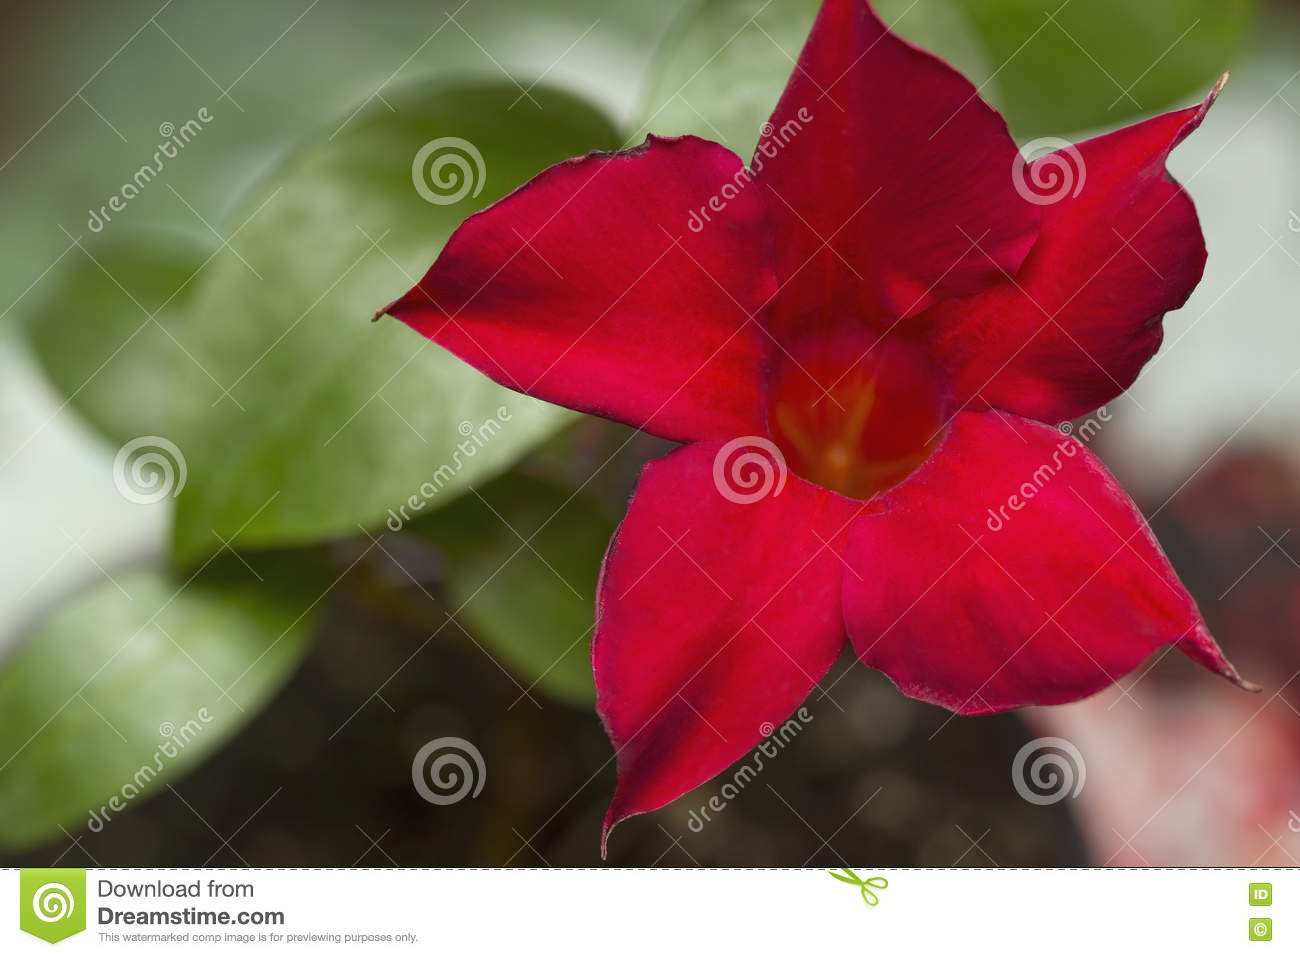 Red Dipladenia Flower stock photo. Image of color, background - 72788426